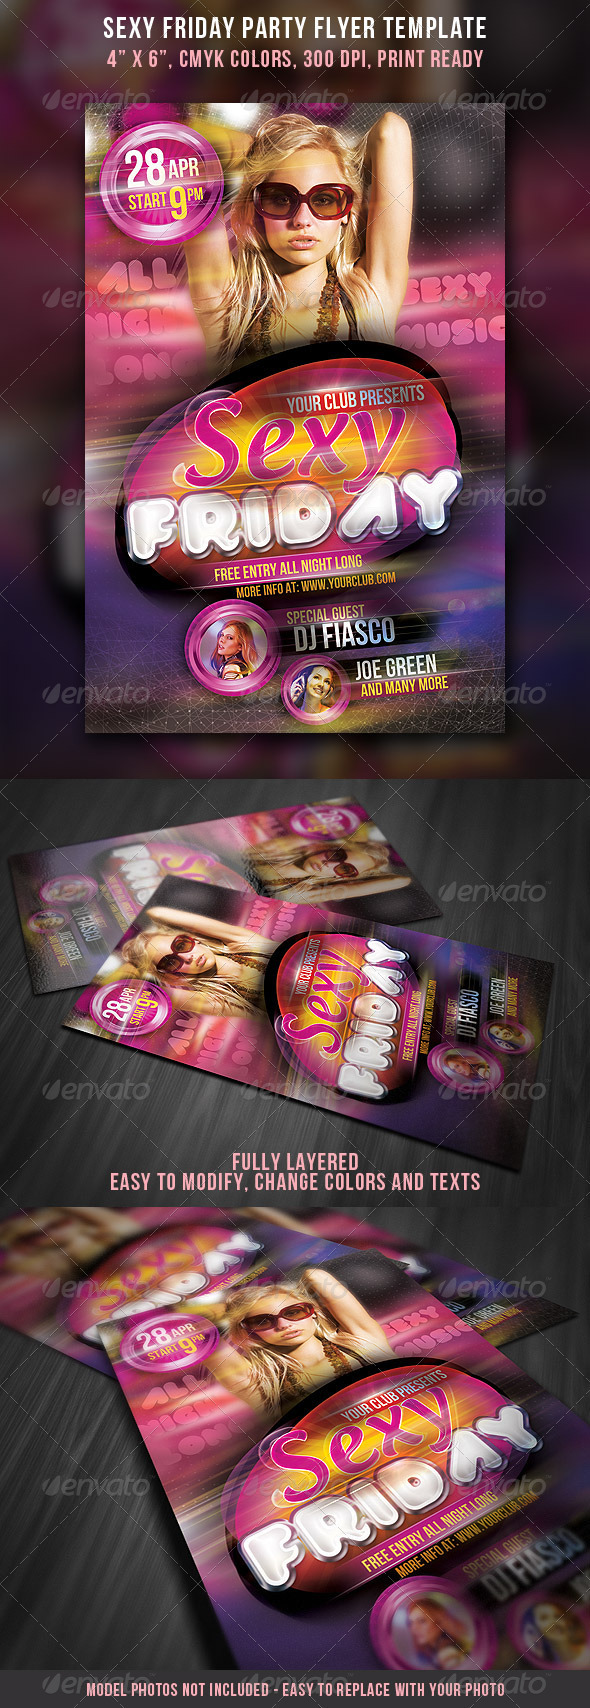 Sexy Friday Party Flyer Template - Clubs & Parties Events